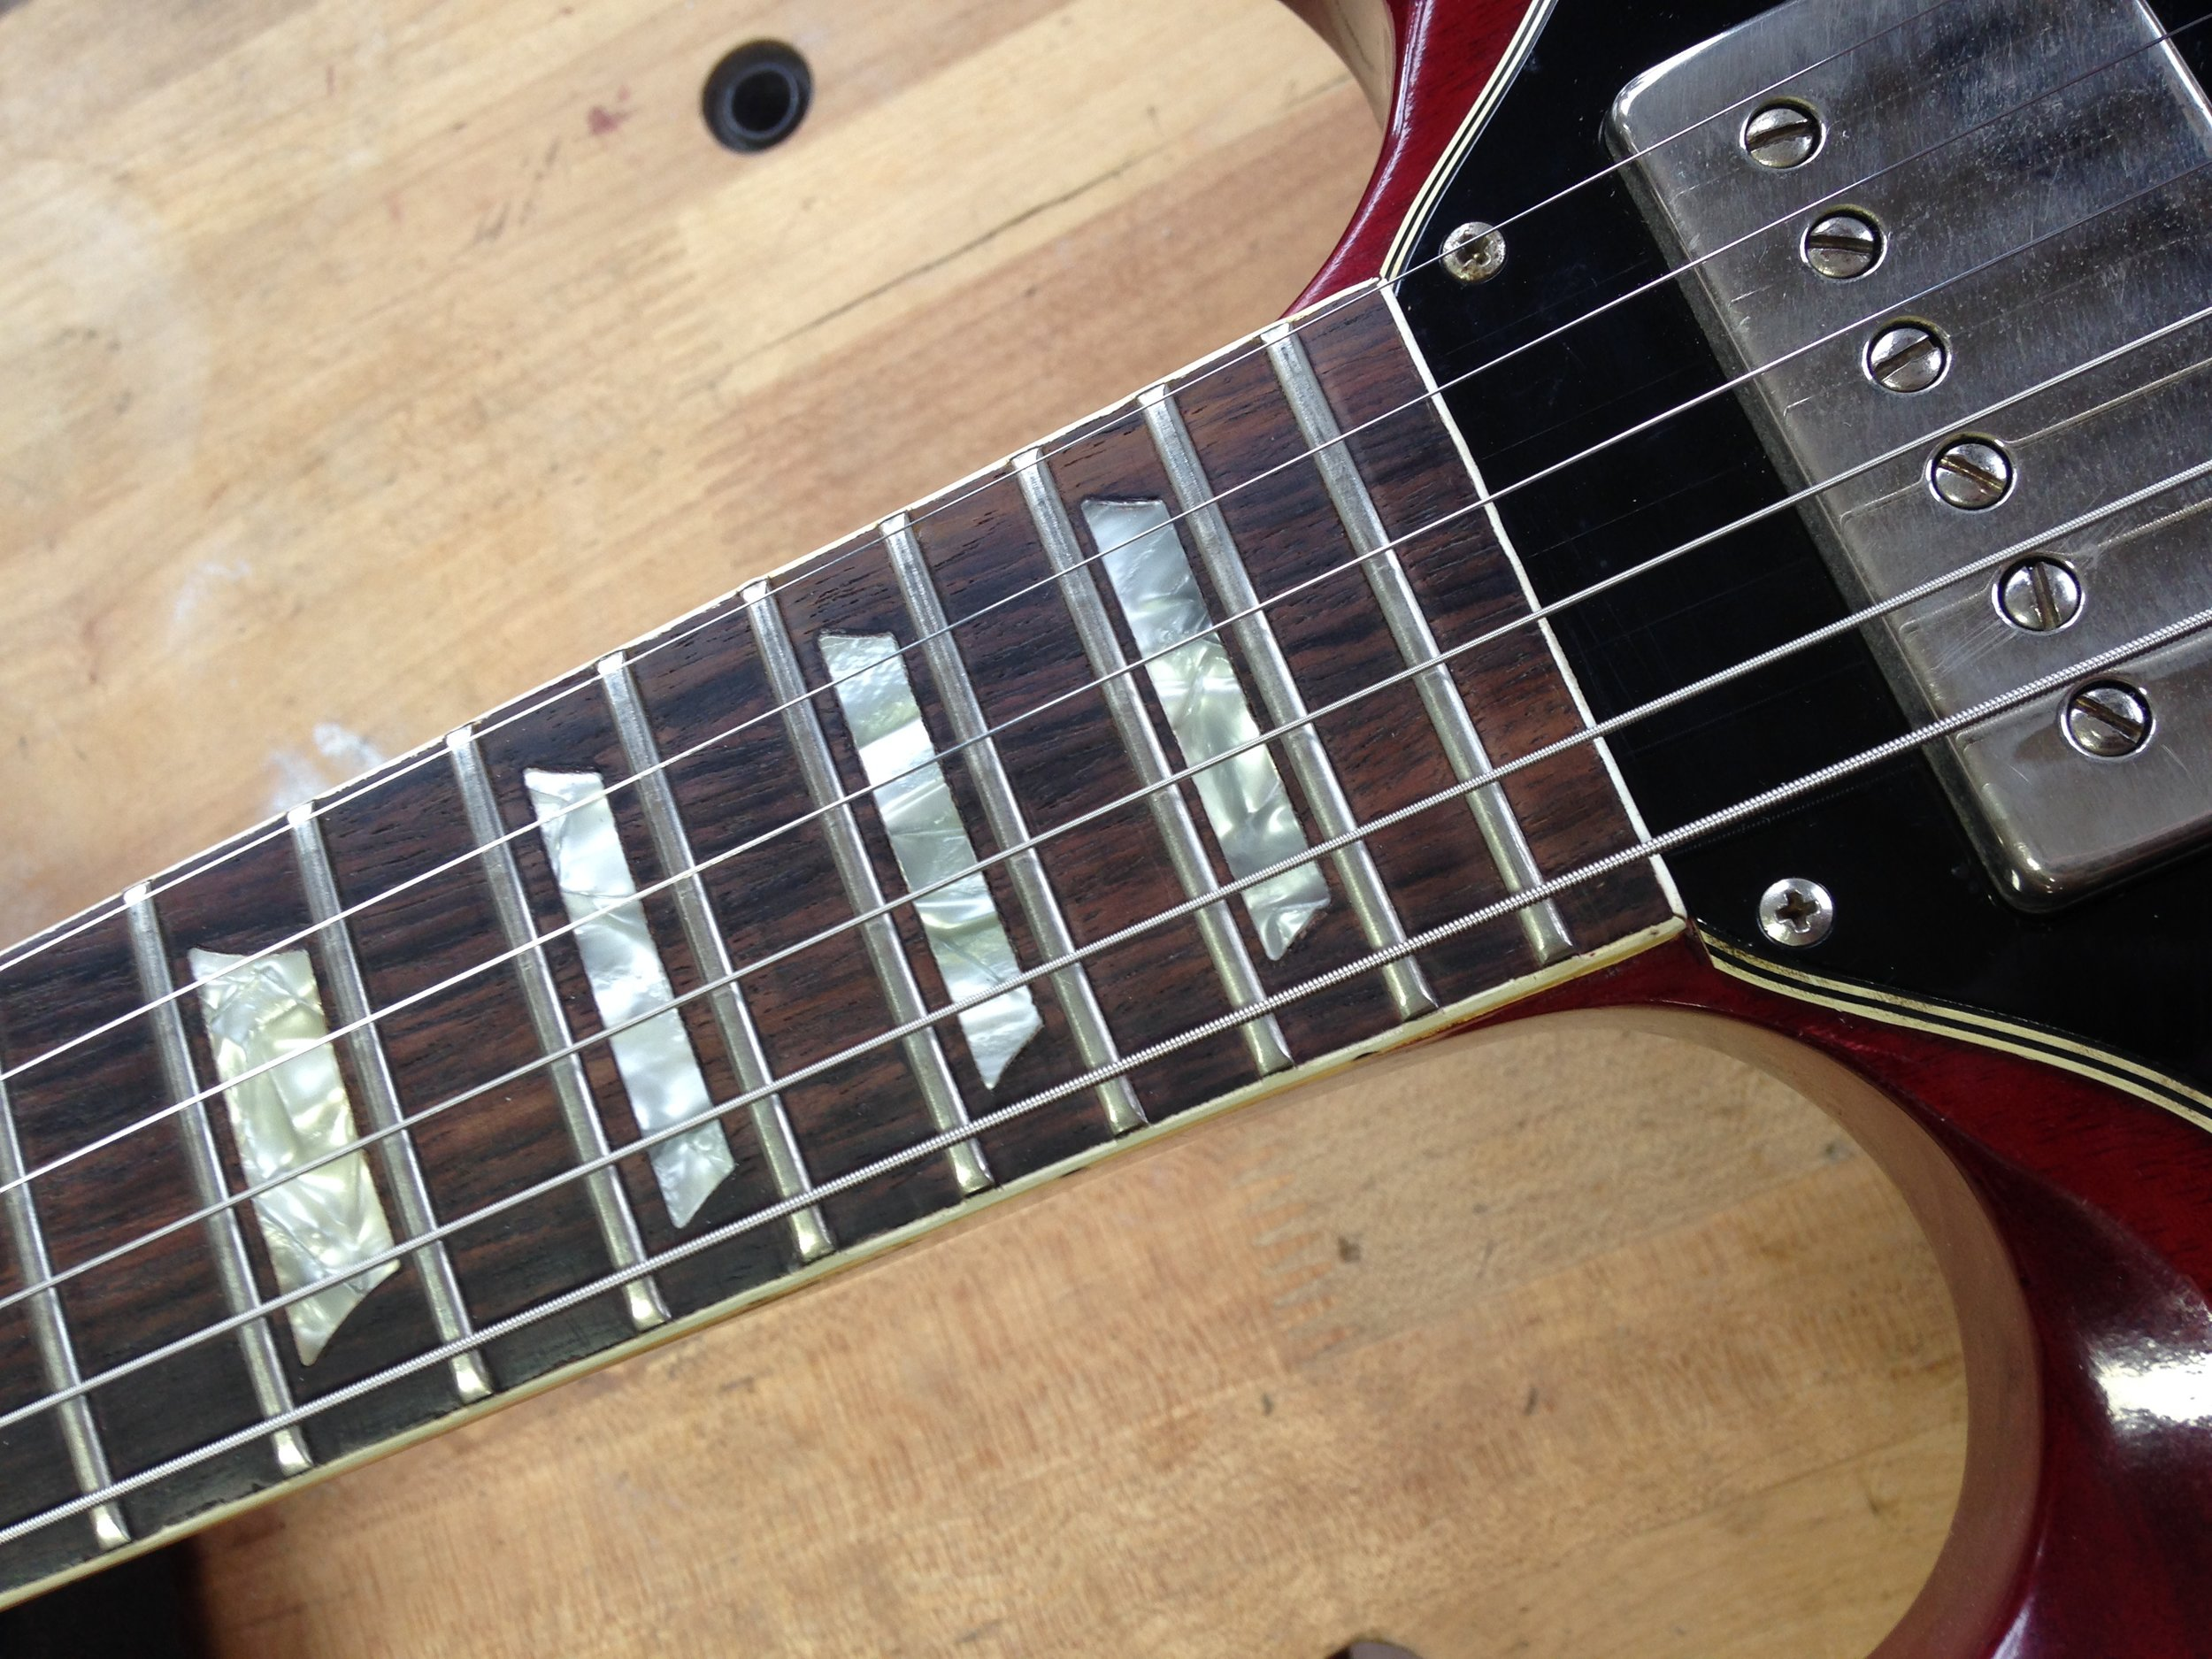 - Once the section of the fingerboard, inlays and binding are re-installed the repair is invisible. Now this old guitar has a great working truss rod!